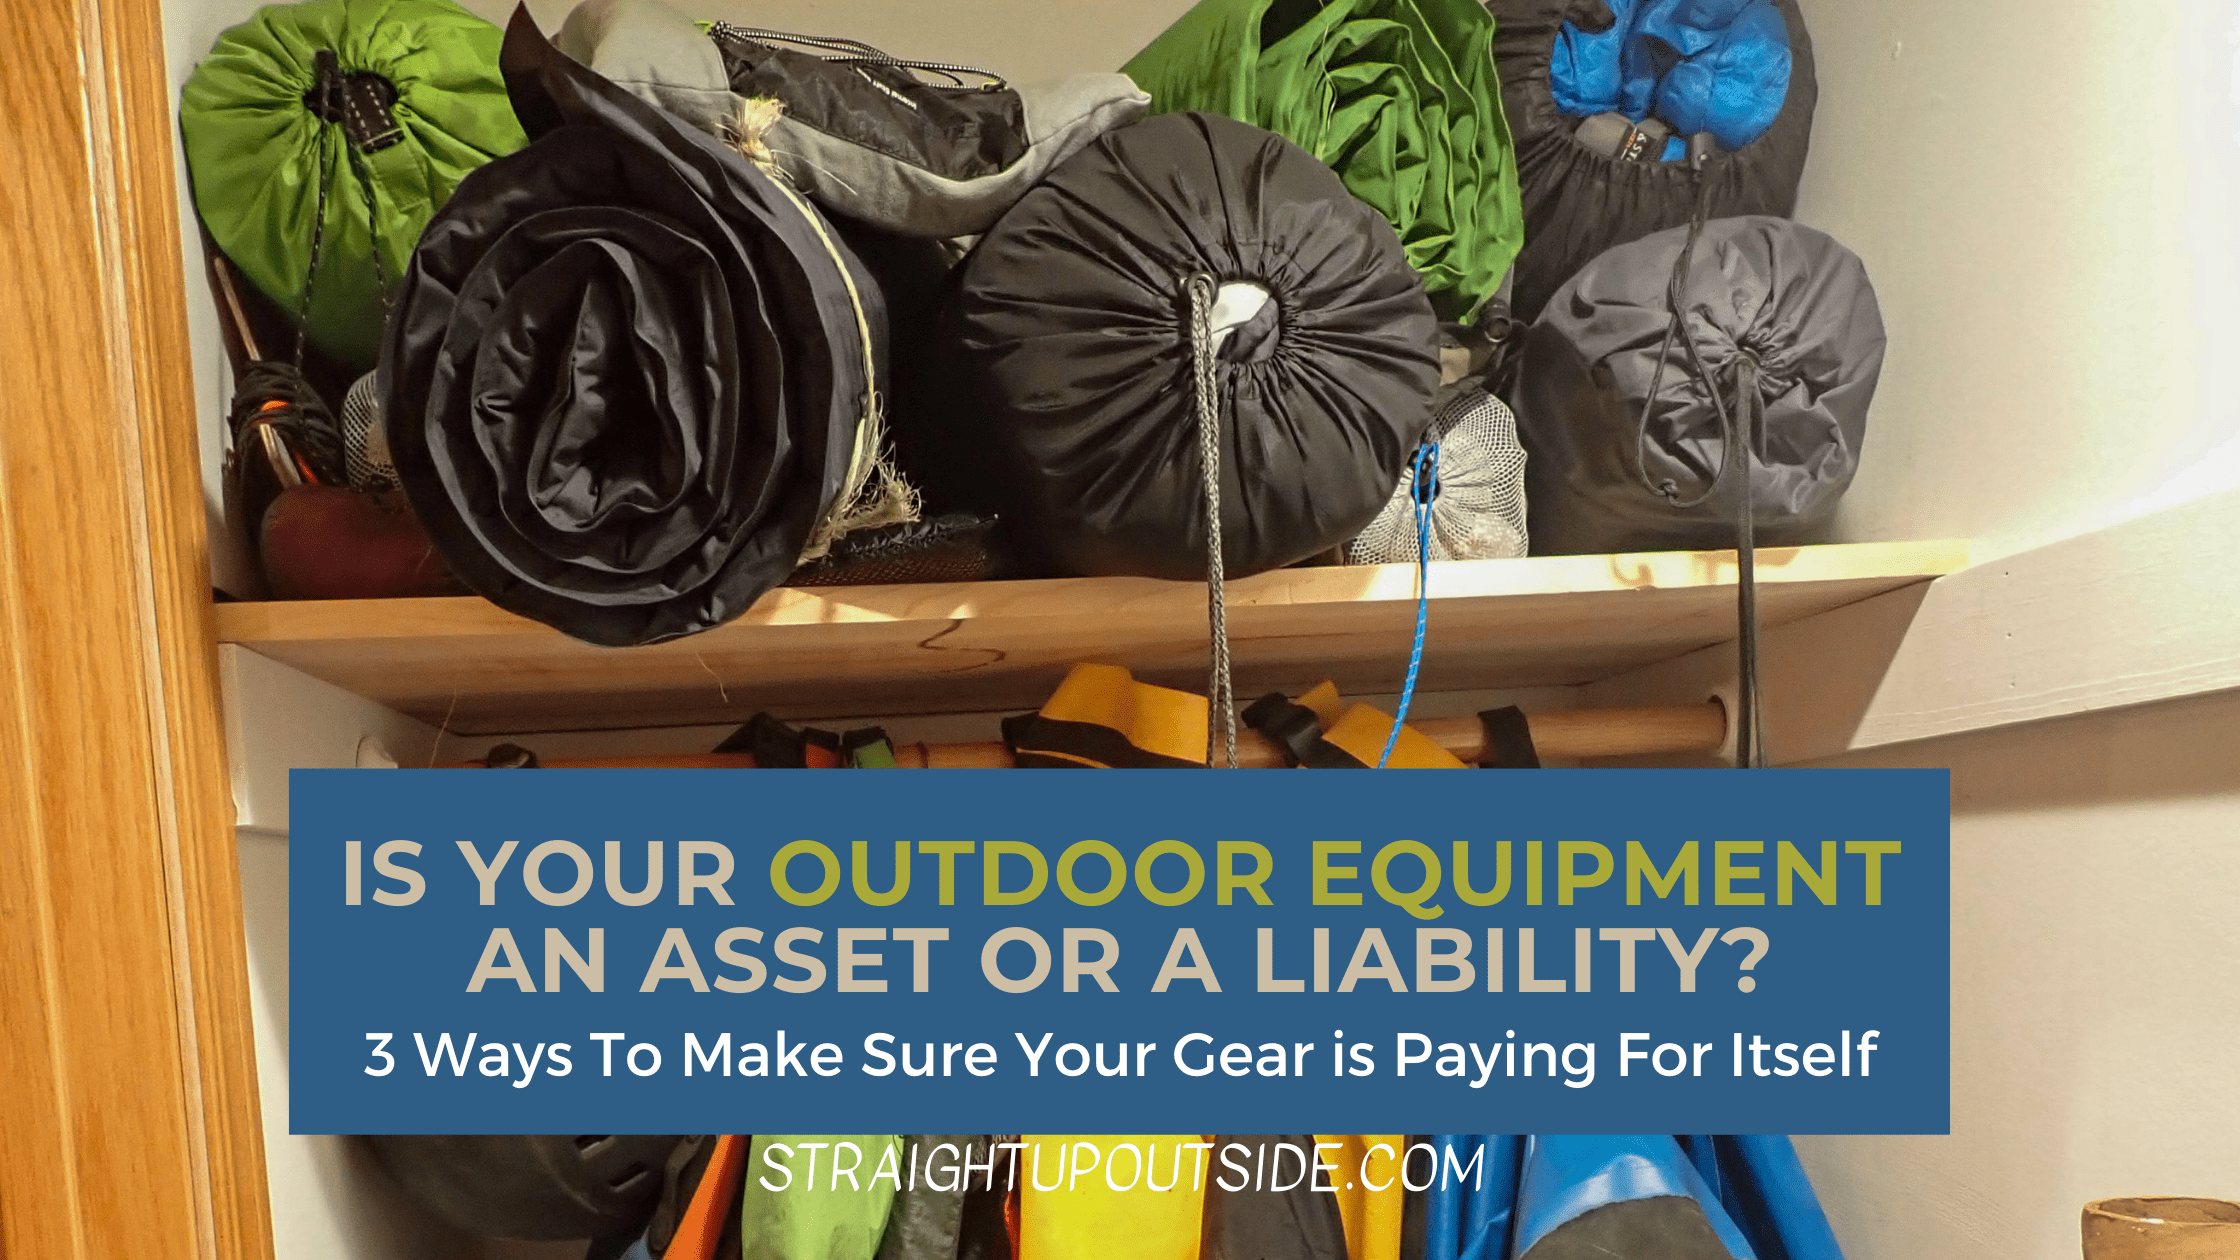 Is Your Outdoor Equipment an Asset or a Liability?